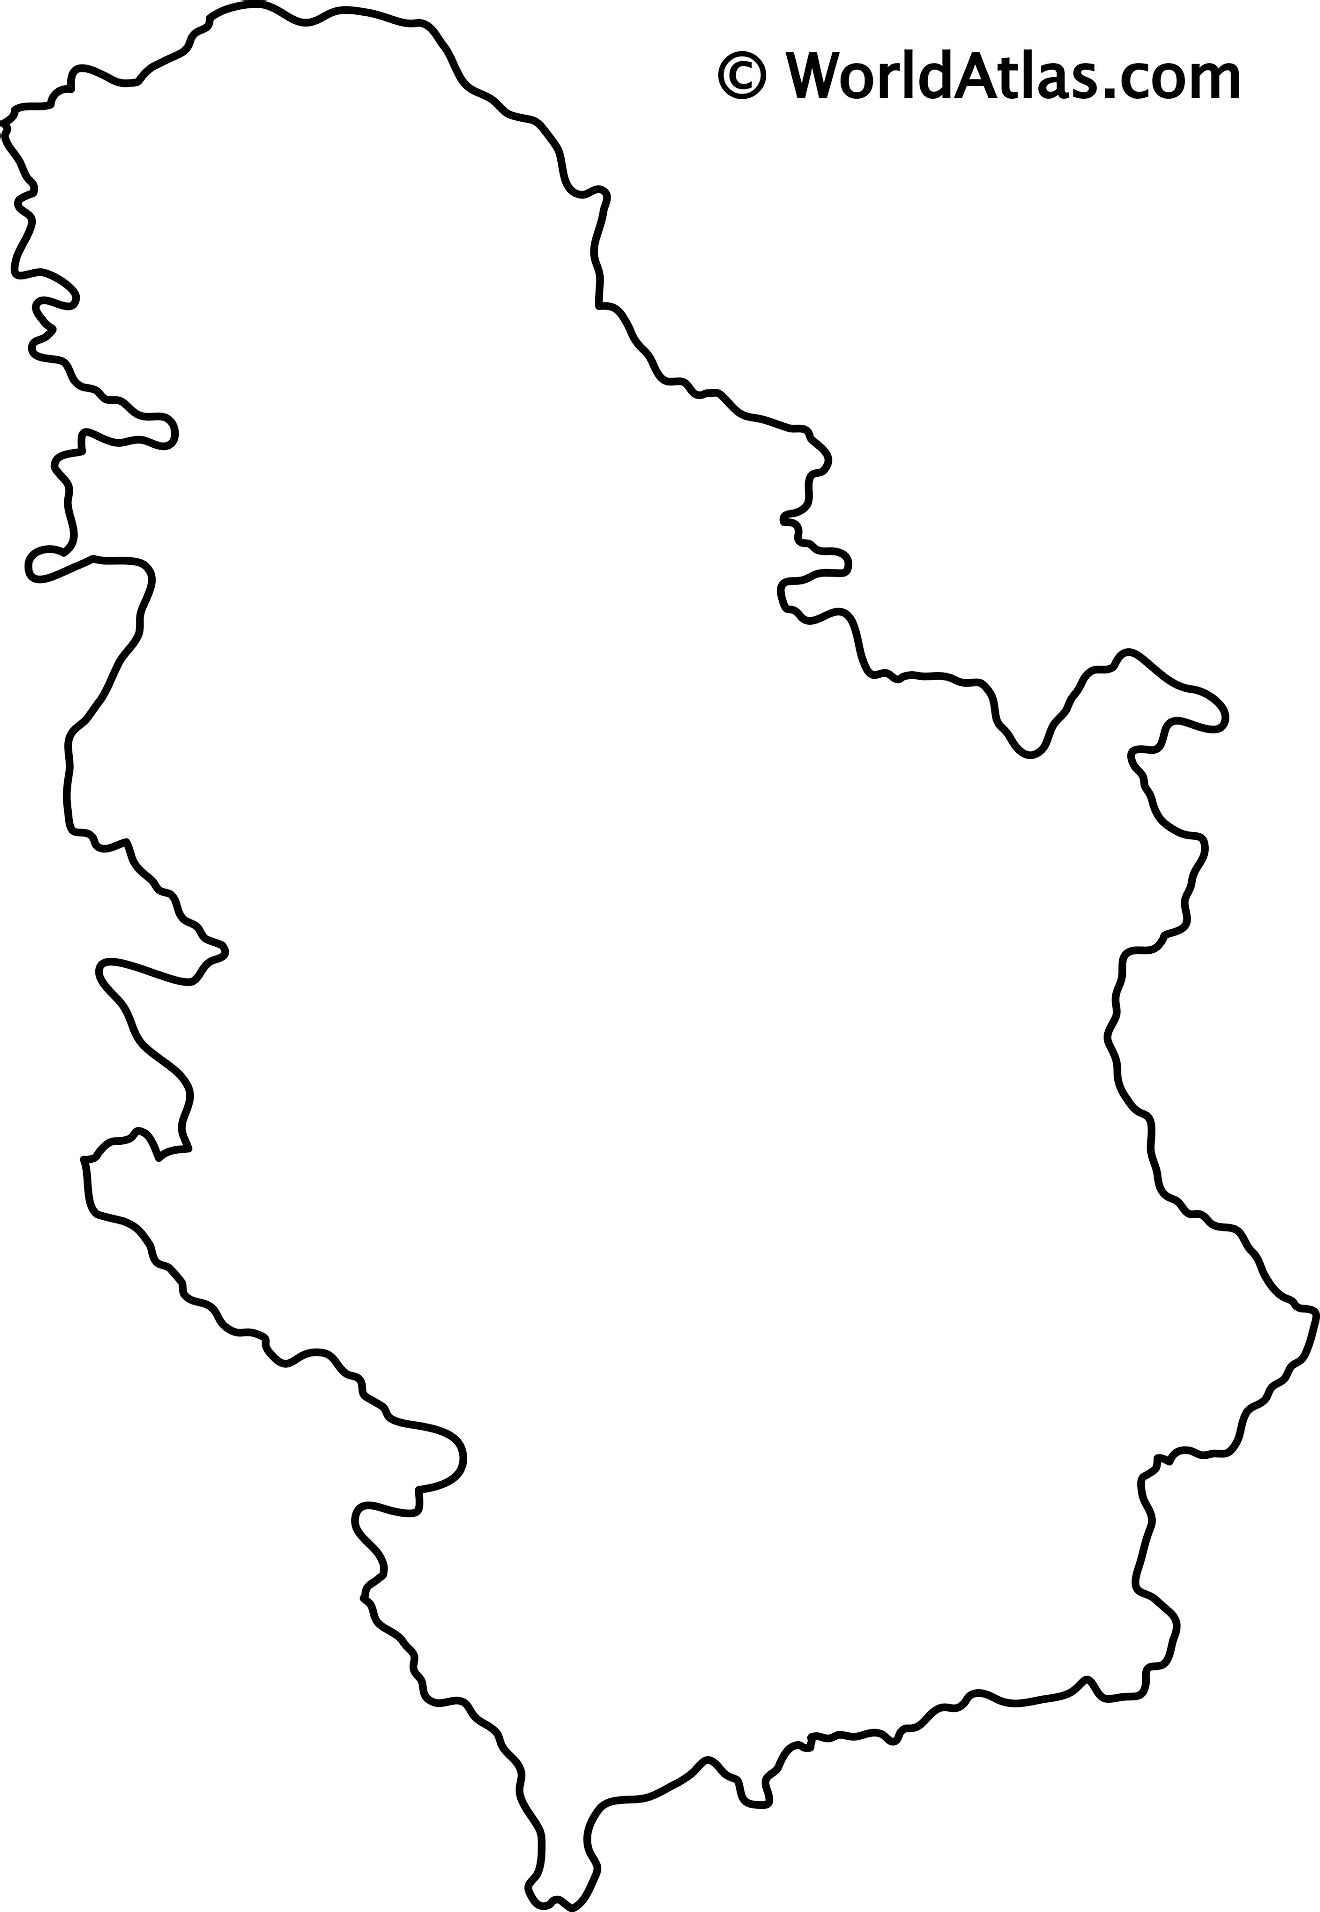 Blank Outline Map of Serbia